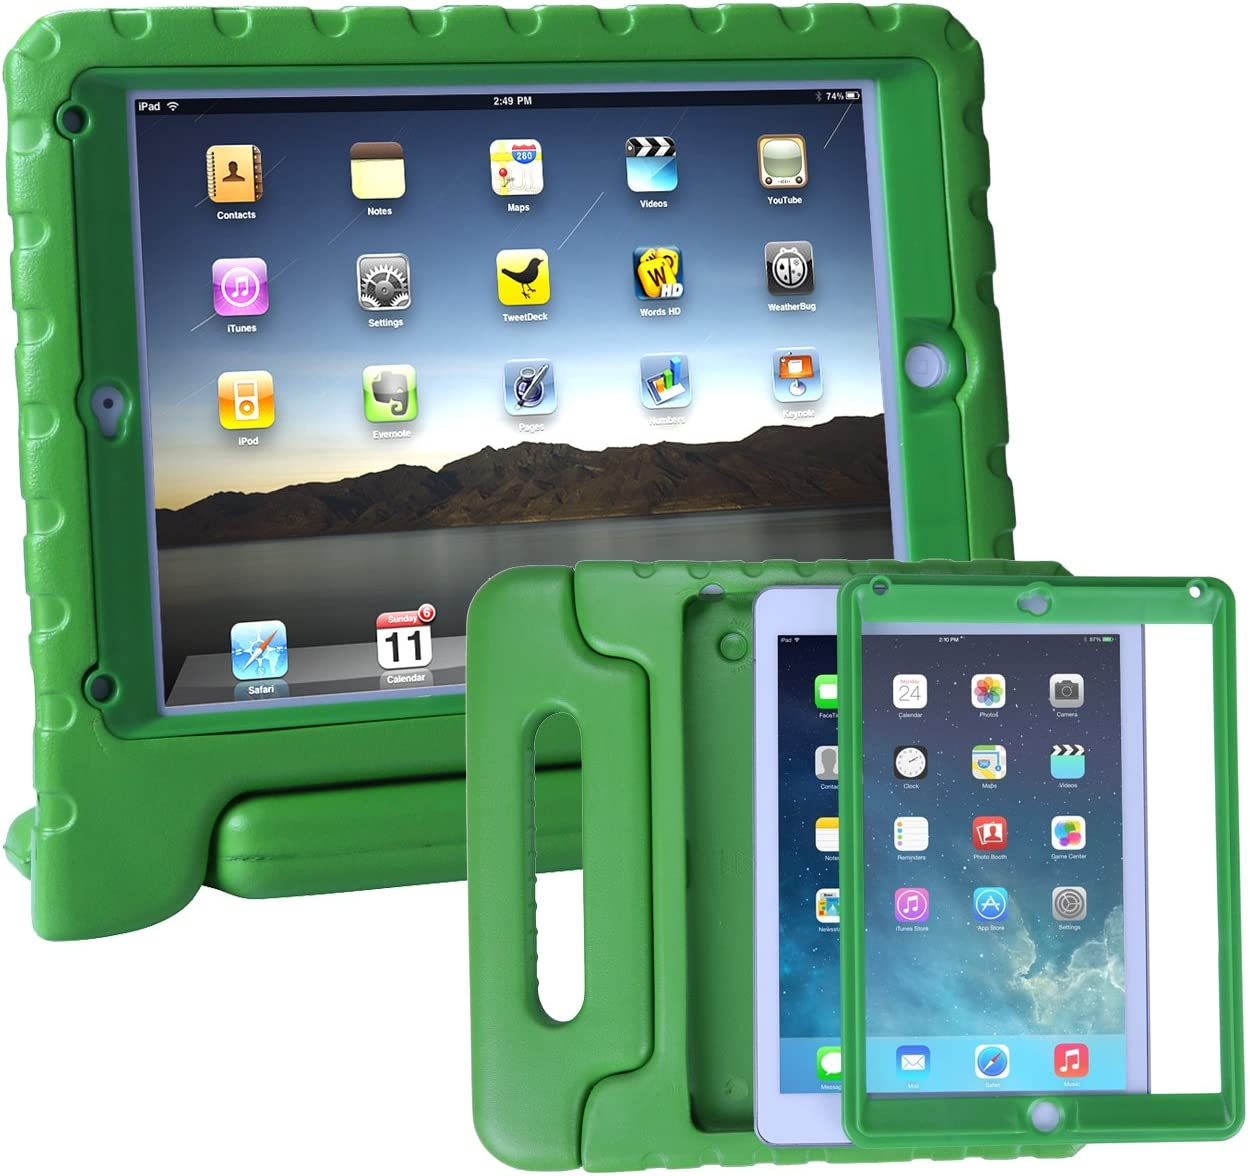 HDE Case for iPad Air - Kids Shockproof Bumper Hard Cover Handle Stand with Built in Screen Protector for Apple iPad Air 1 - 2013 Release 1st Generation (Green)